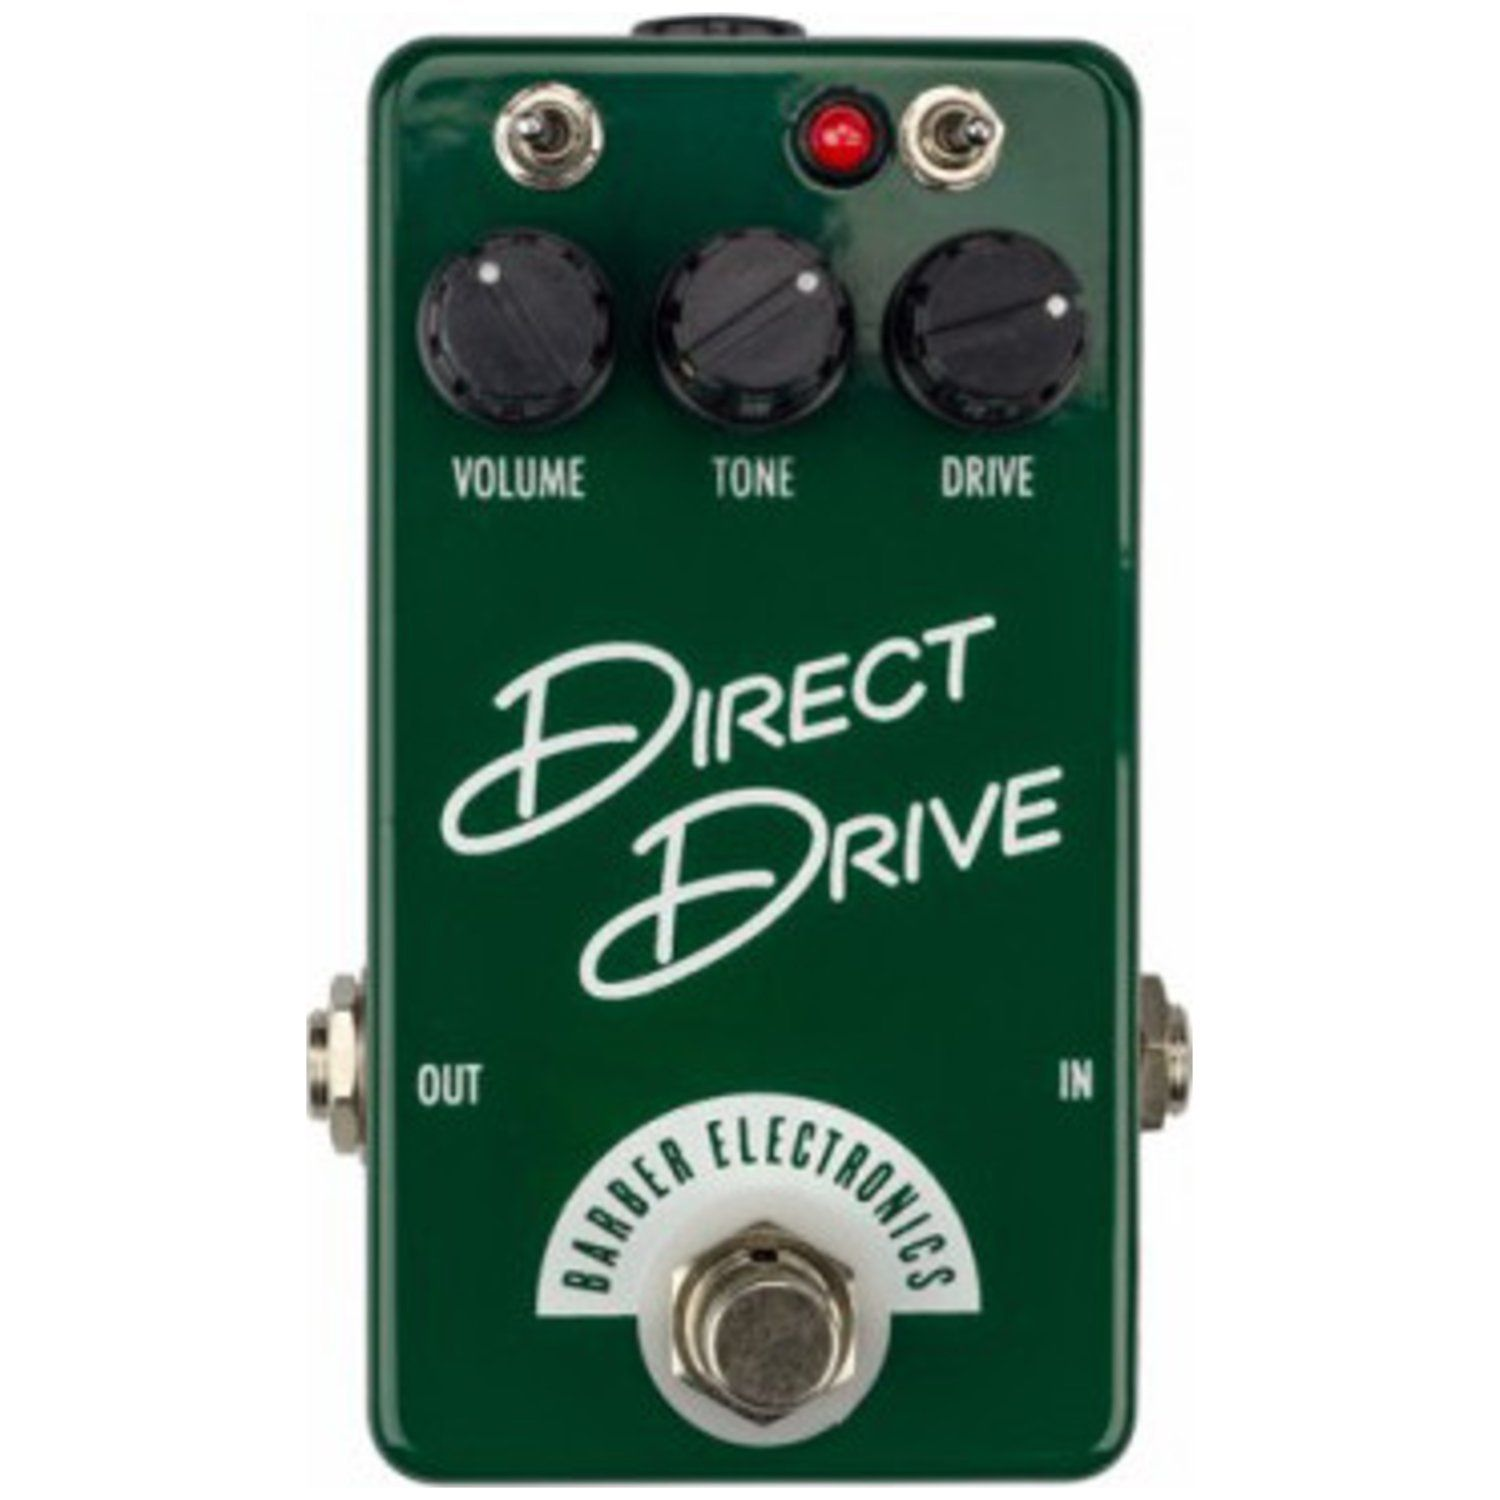 Barber Direct Drive Compact Vs Gain Changer Amazon Barber Electronics Direct Drive Guitar